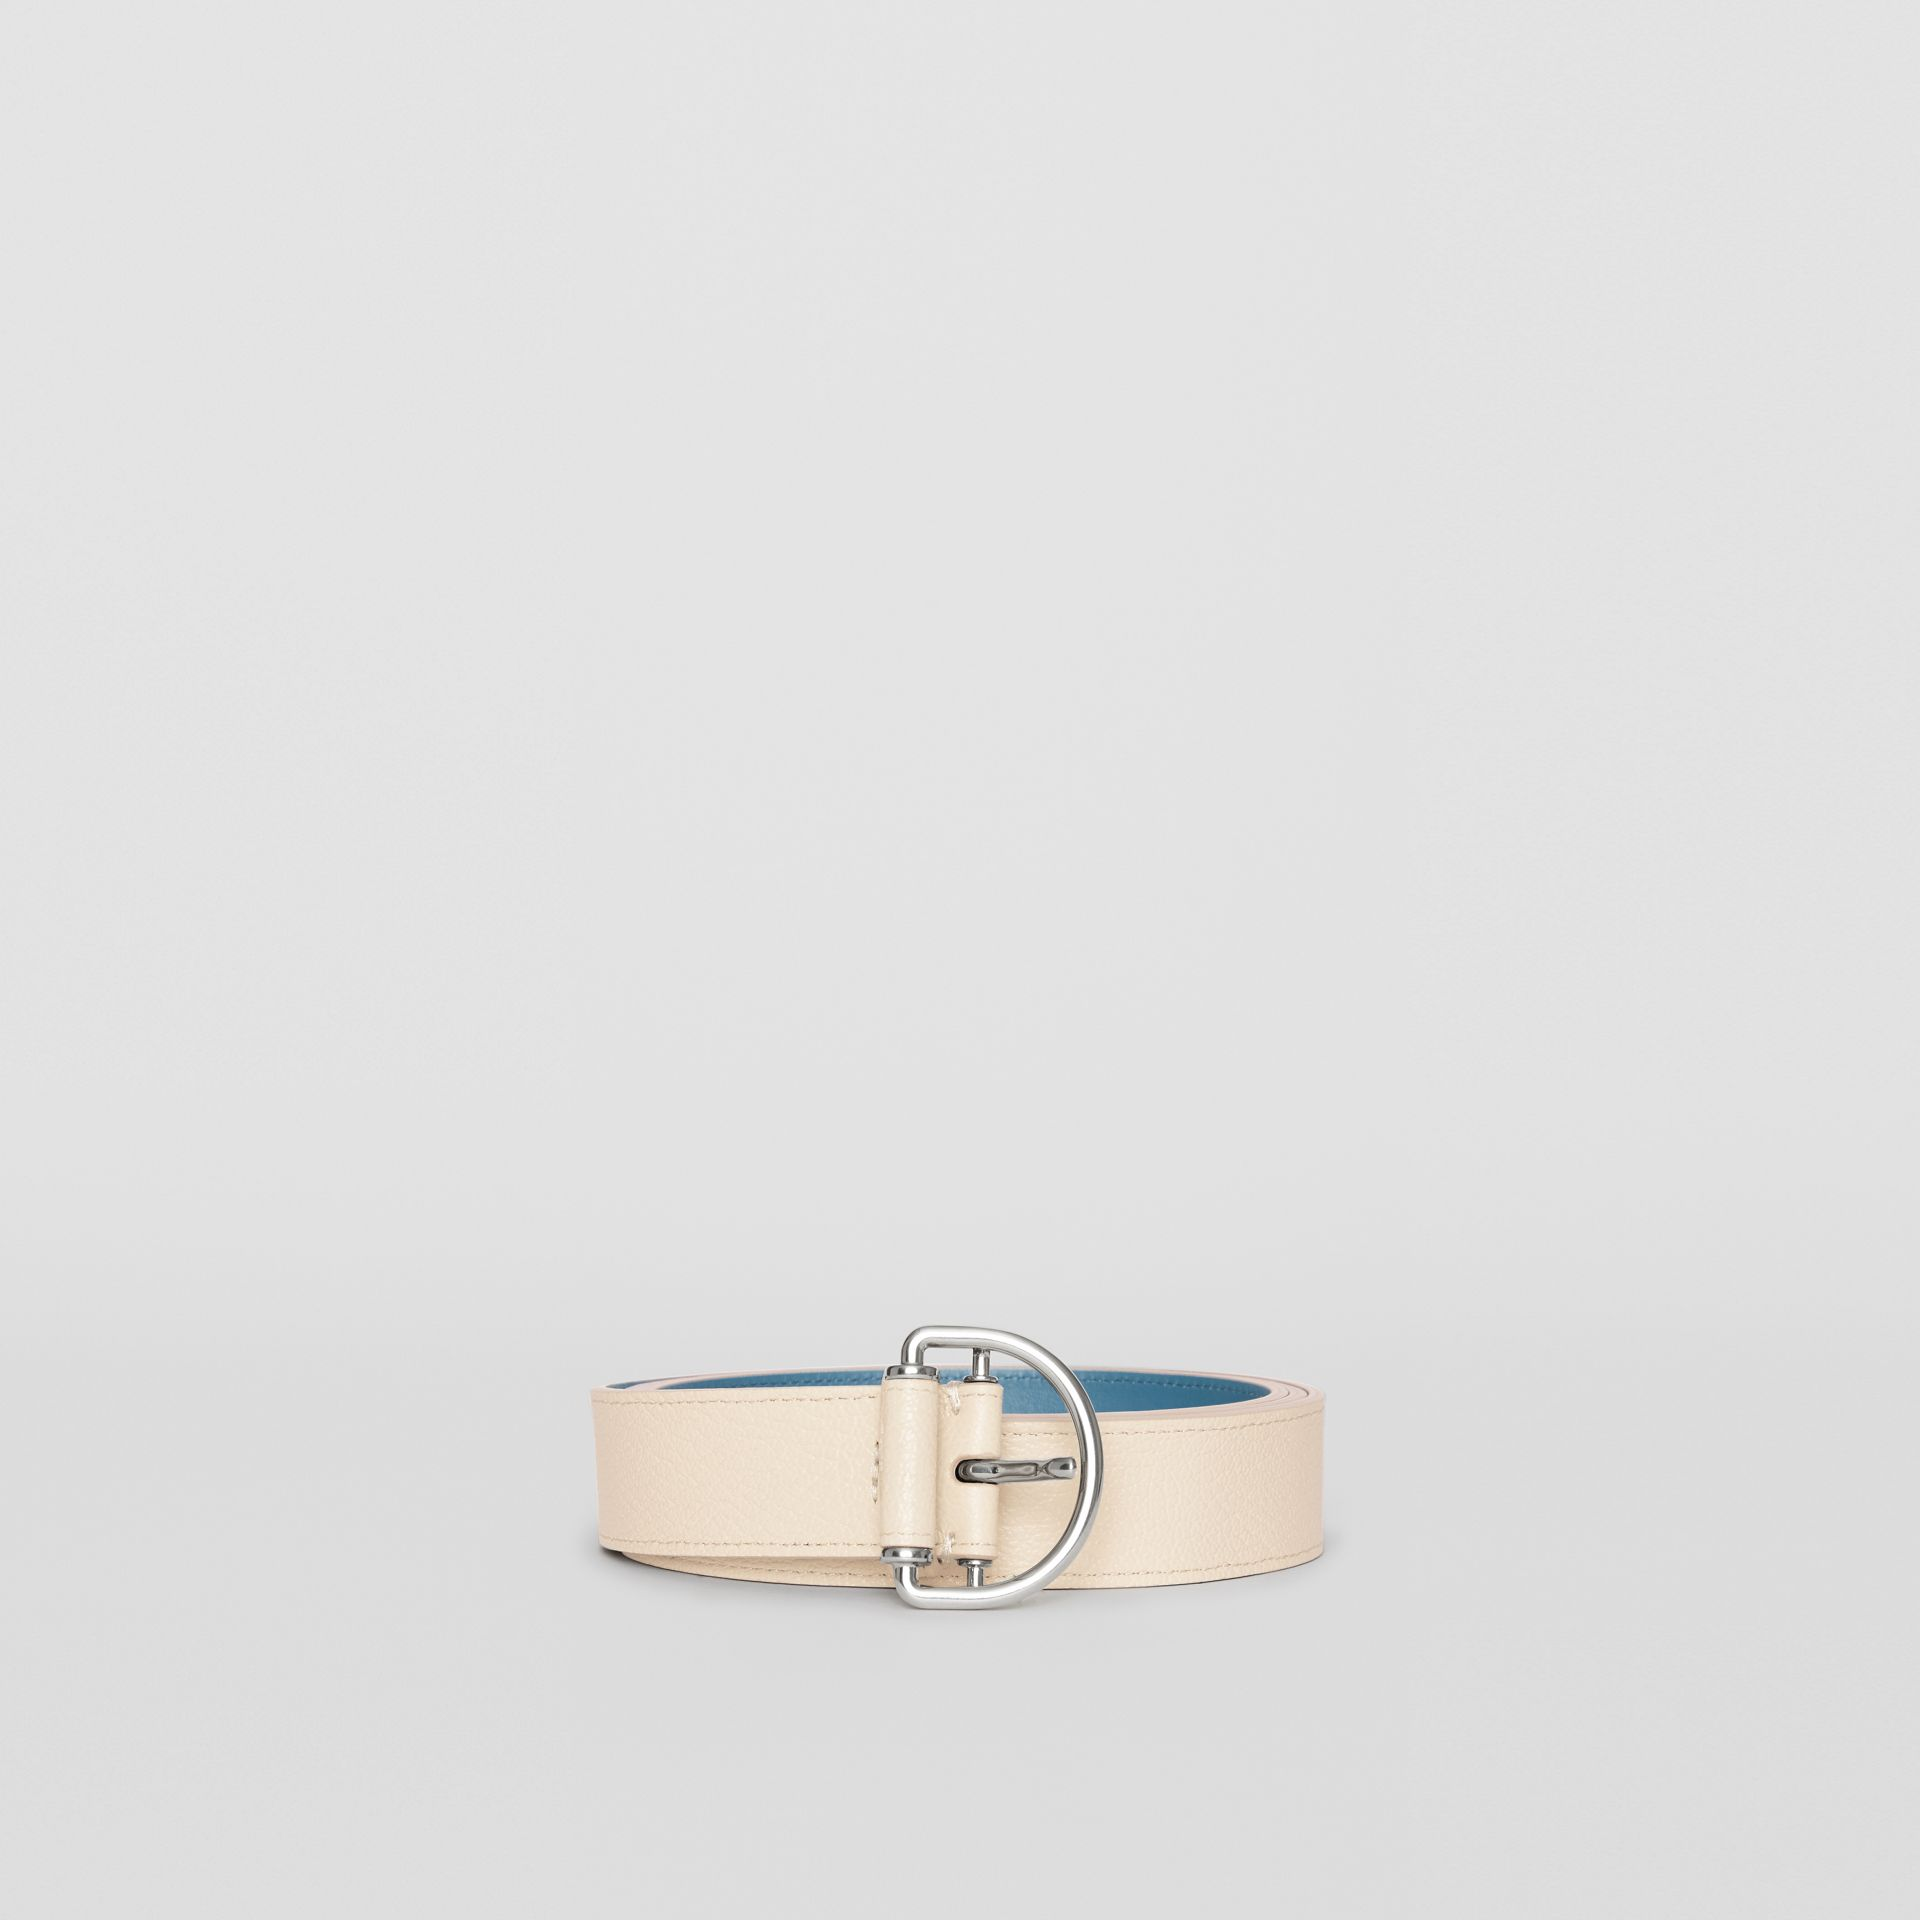 Grainy Leather D-ring Belt in Stone/pewter Blue - Women | Burberry Australia - gallery image 3